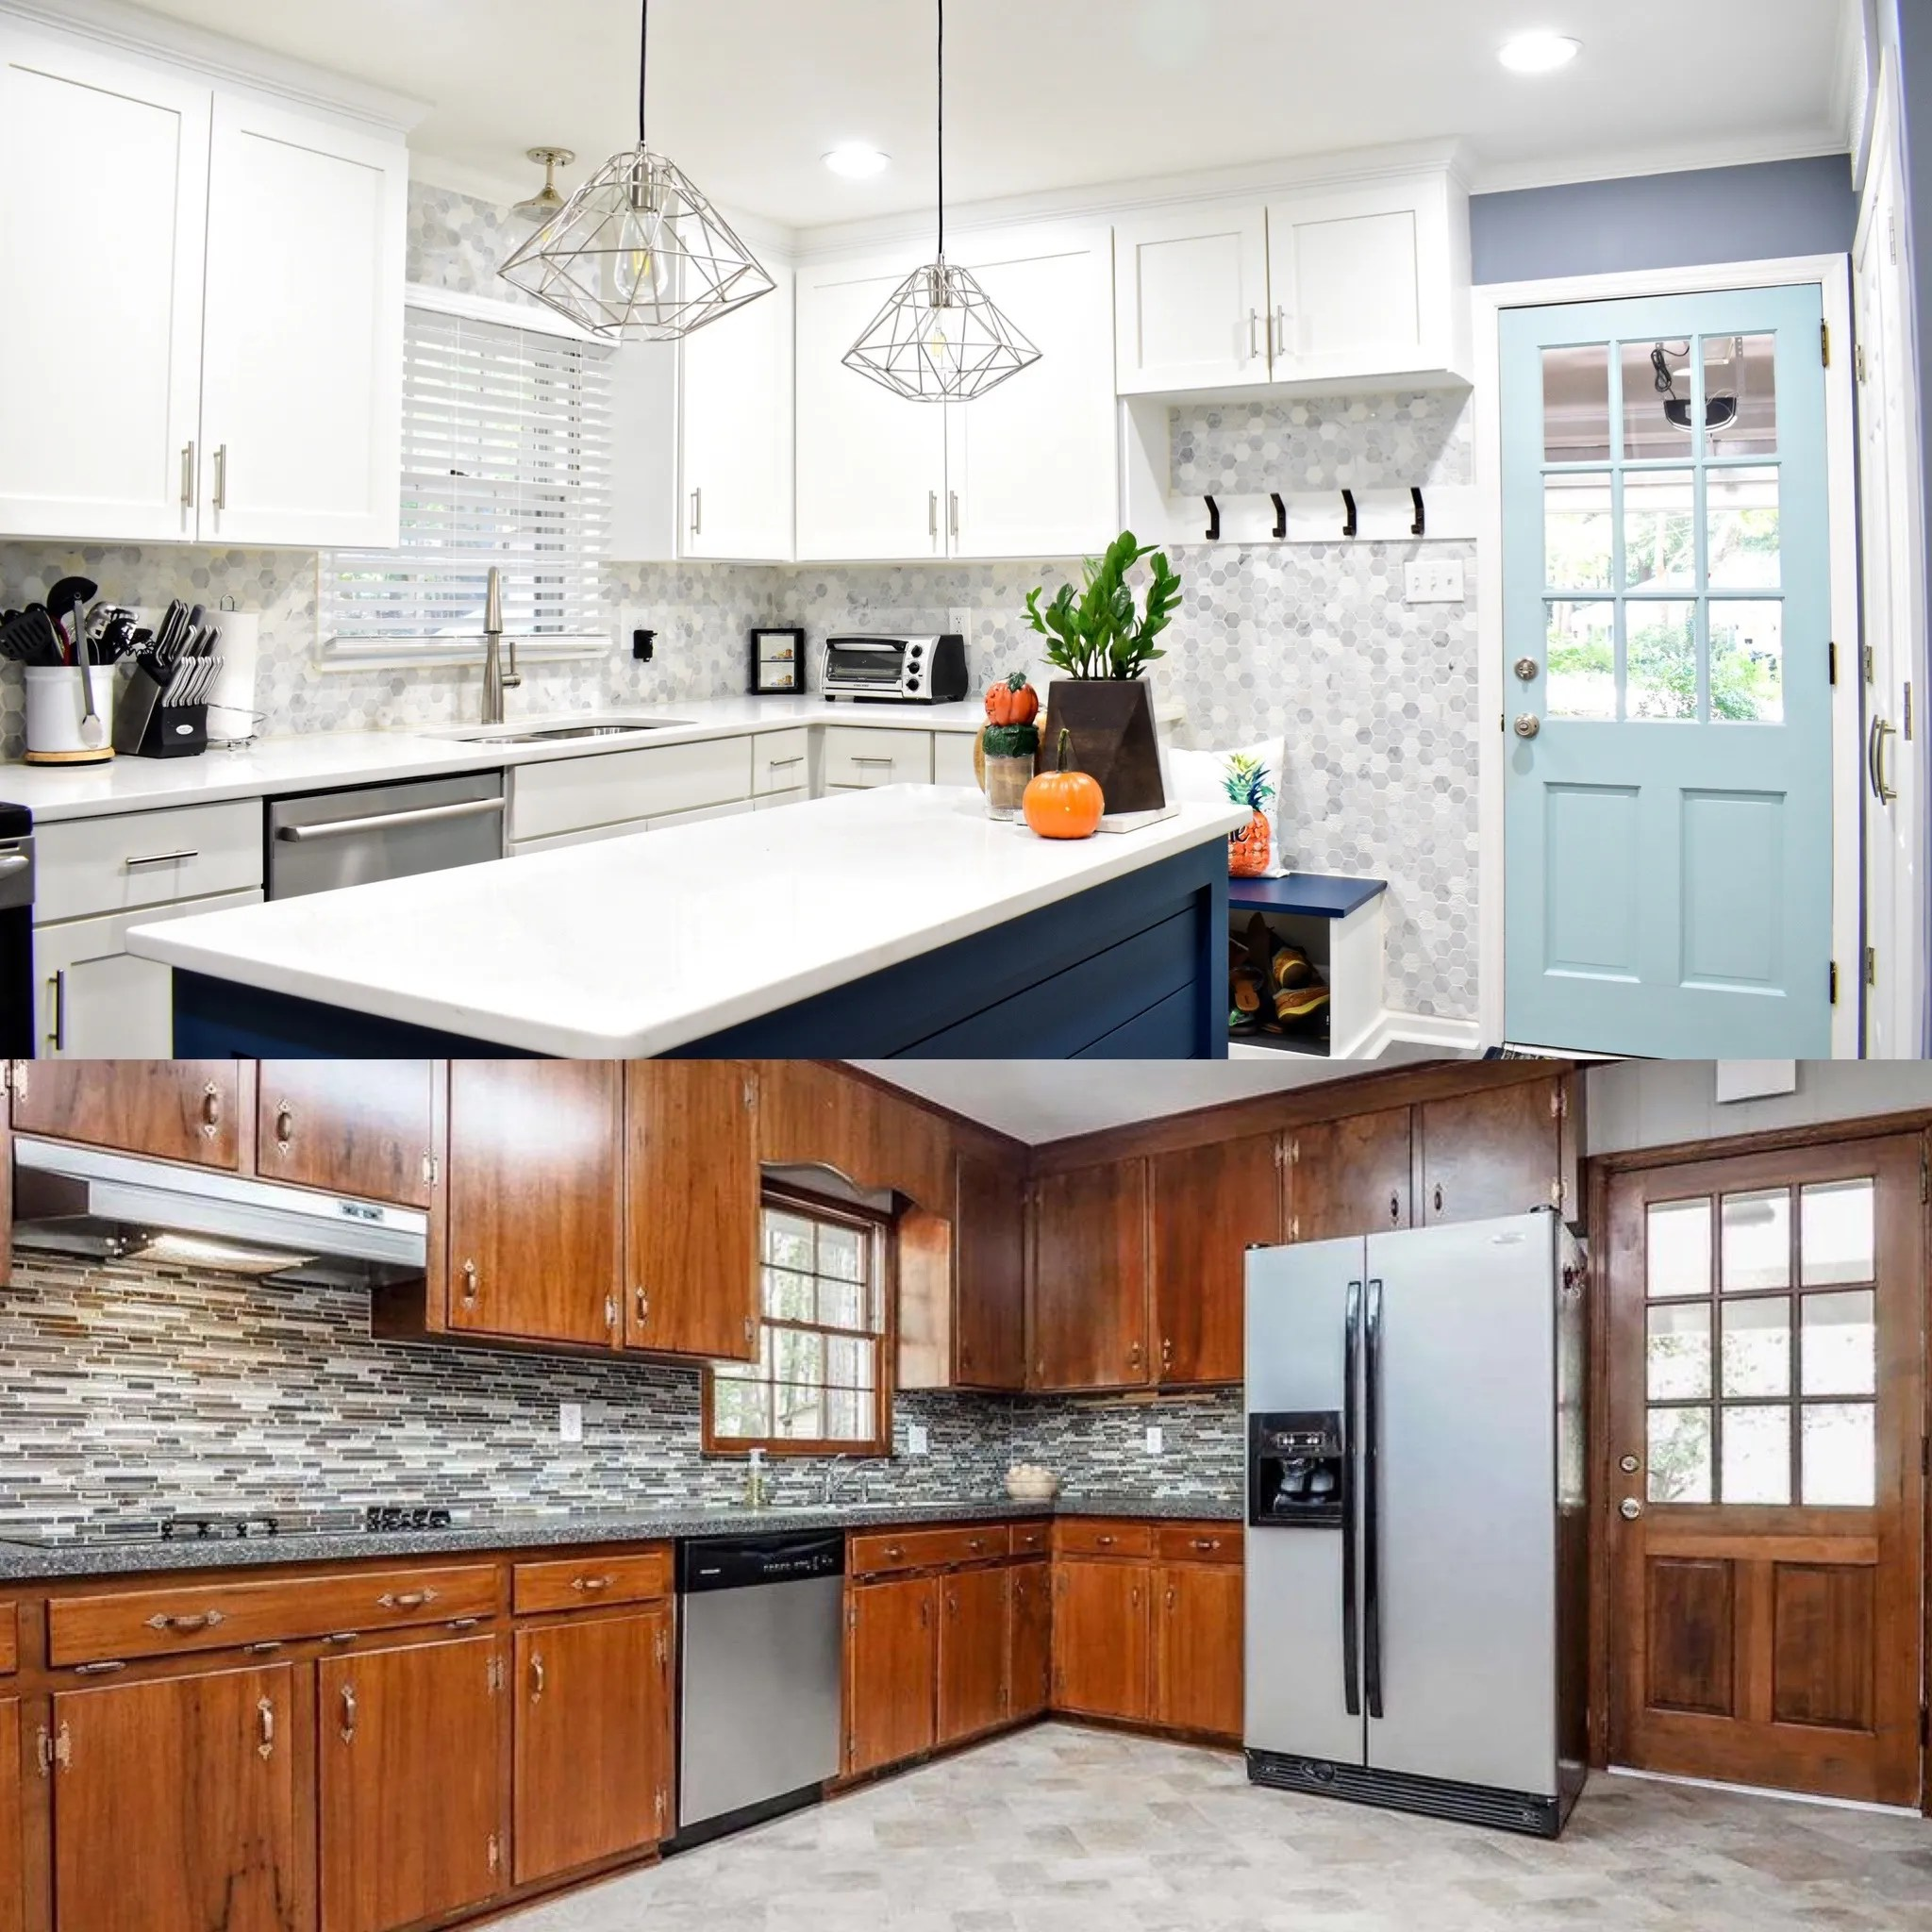 Kitchen Cabinet Makeover - Paint Kitchen Cabinets - Cabinet Remodel